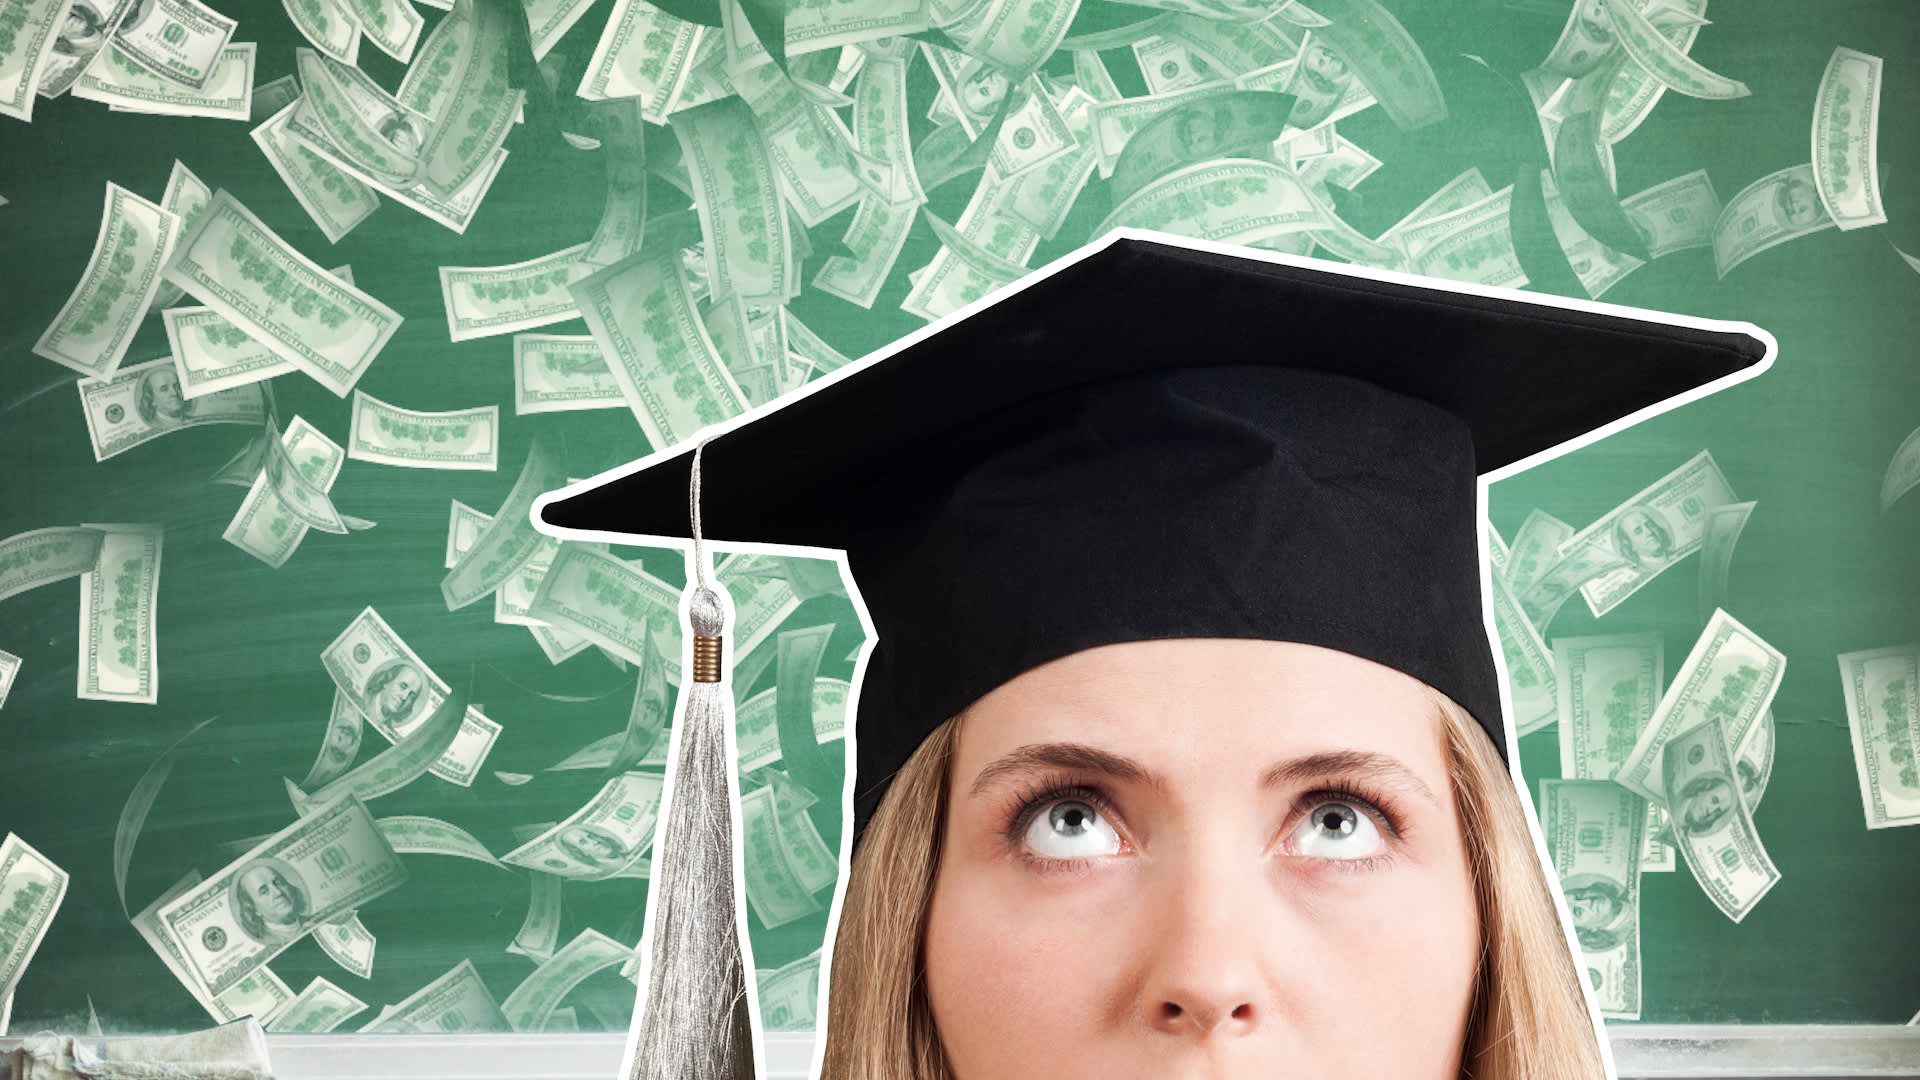 The US Treasury is calling for mandatory financial literacy courses for college students